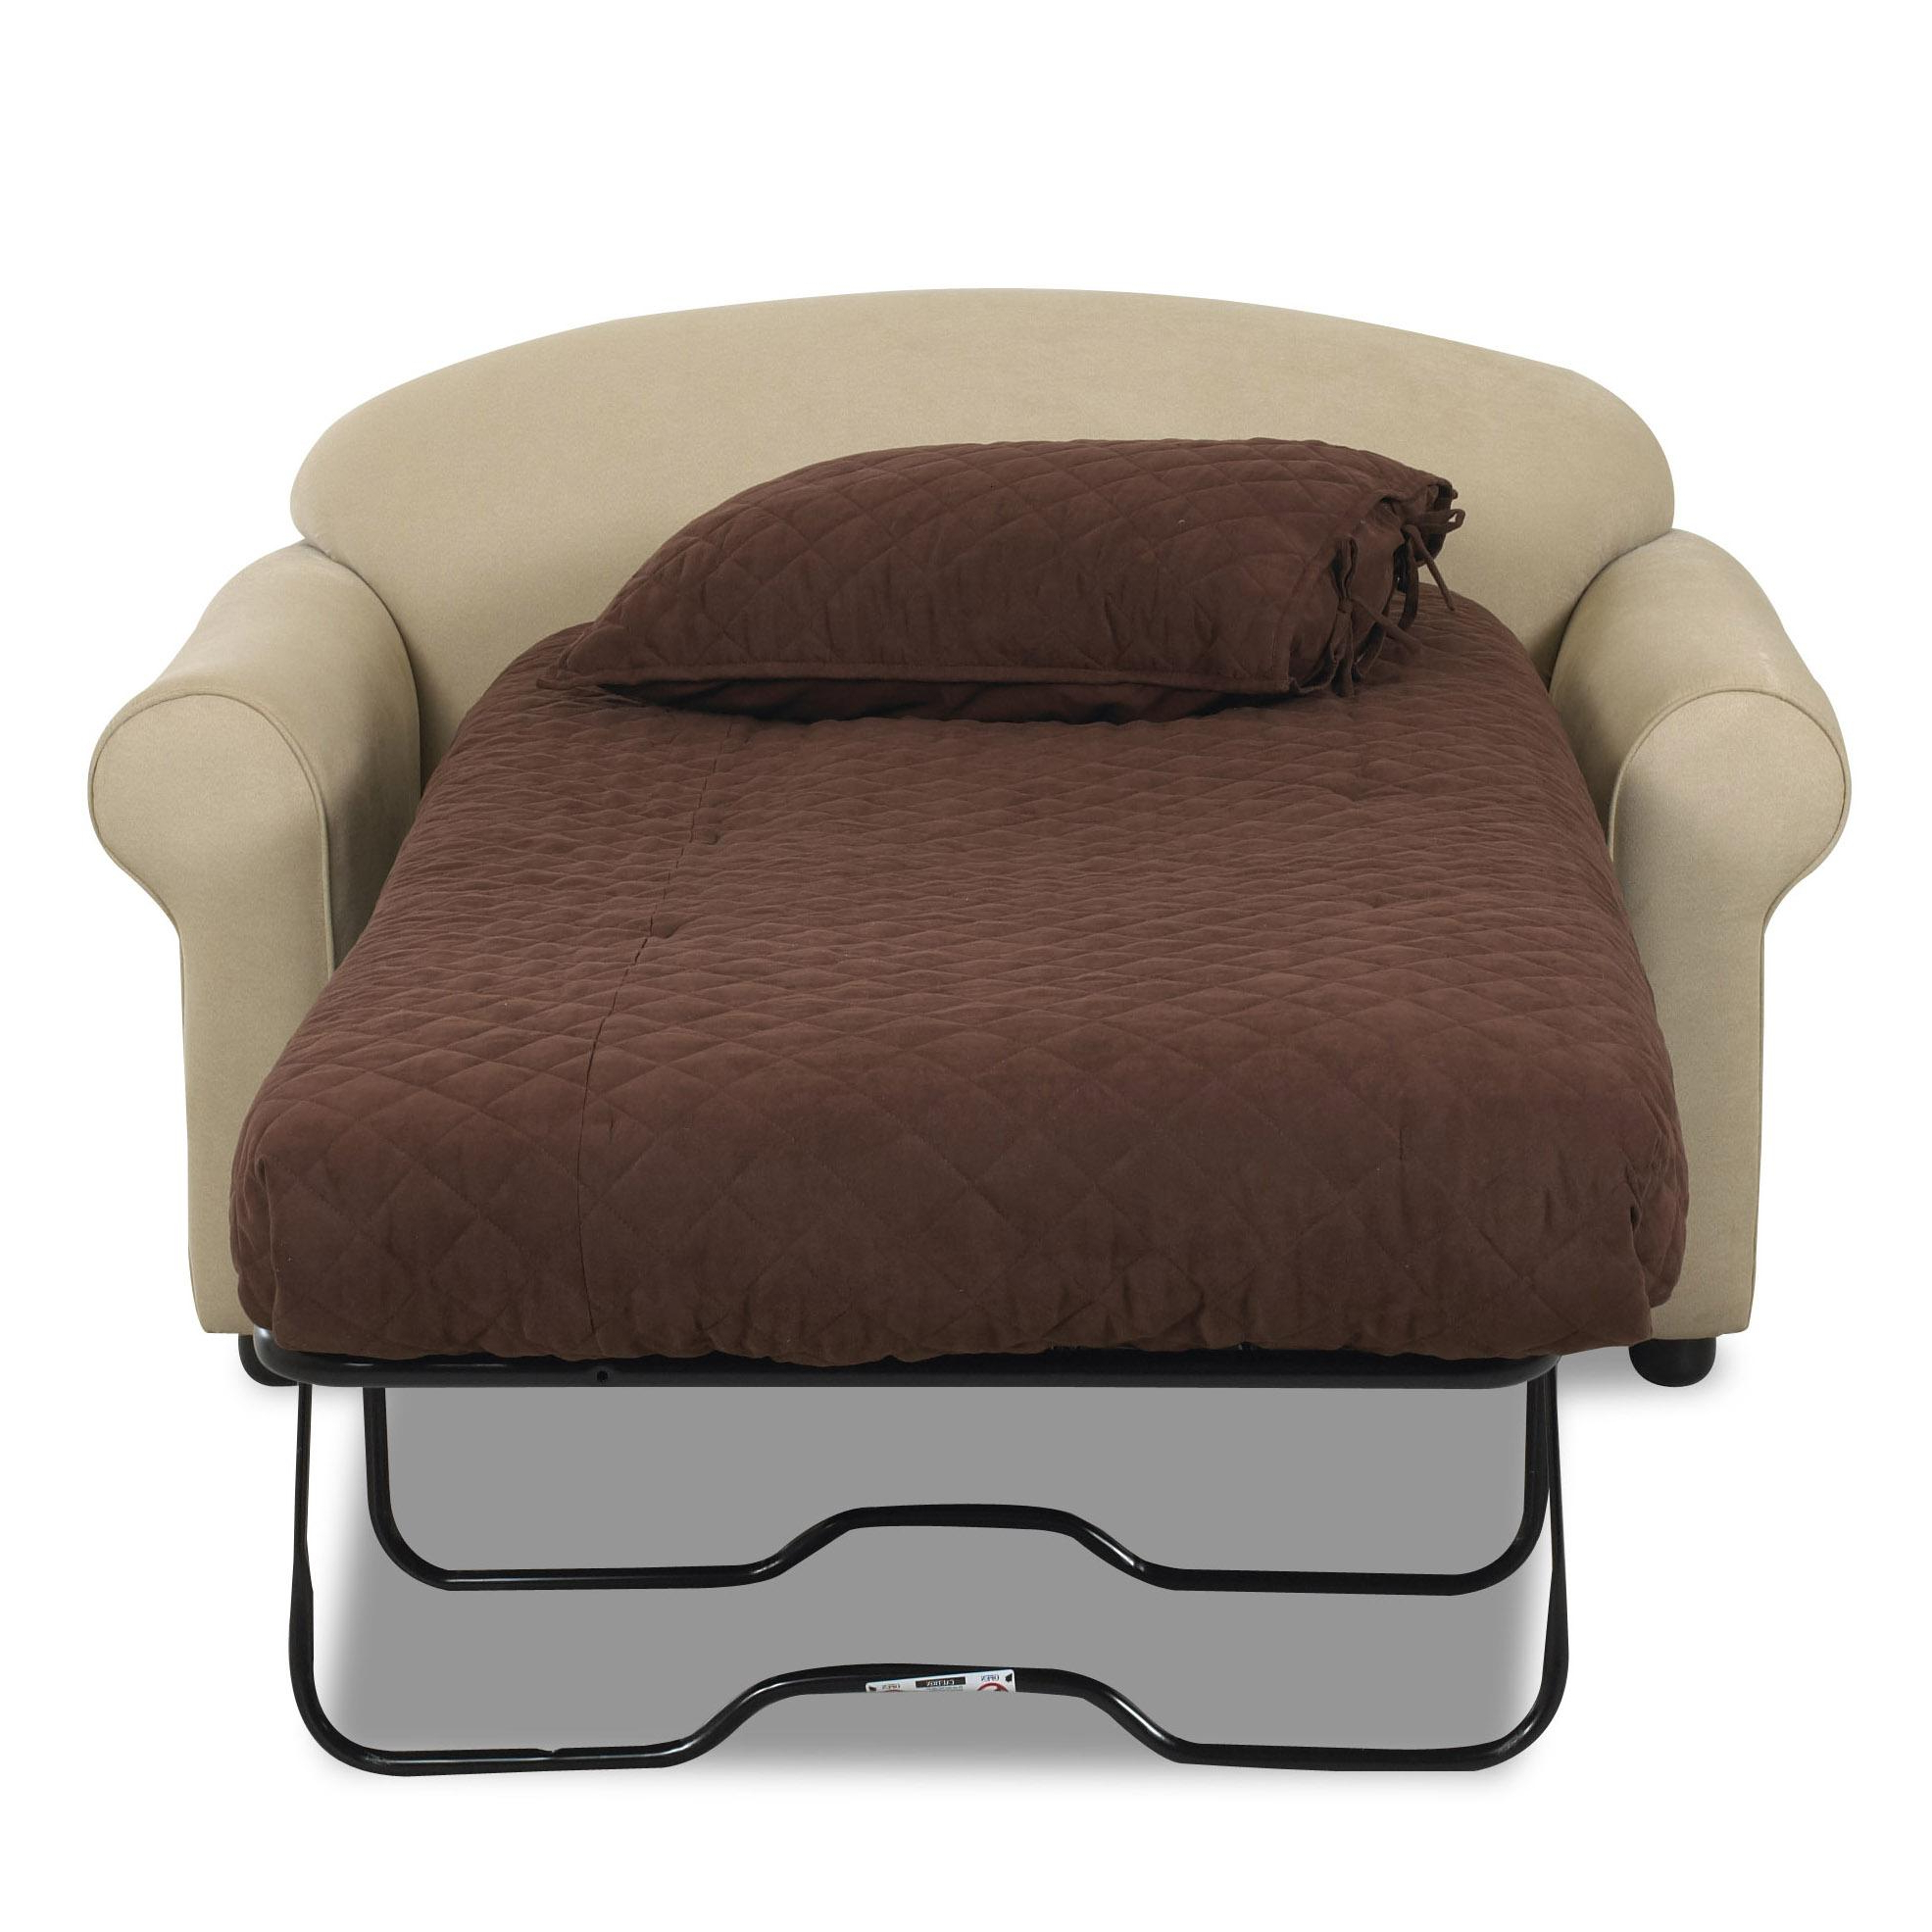 Popular Sofa Beds Chairs Intended For Klaussner Possibilities Innerspring Chair Sleeper (View 14 of 20)